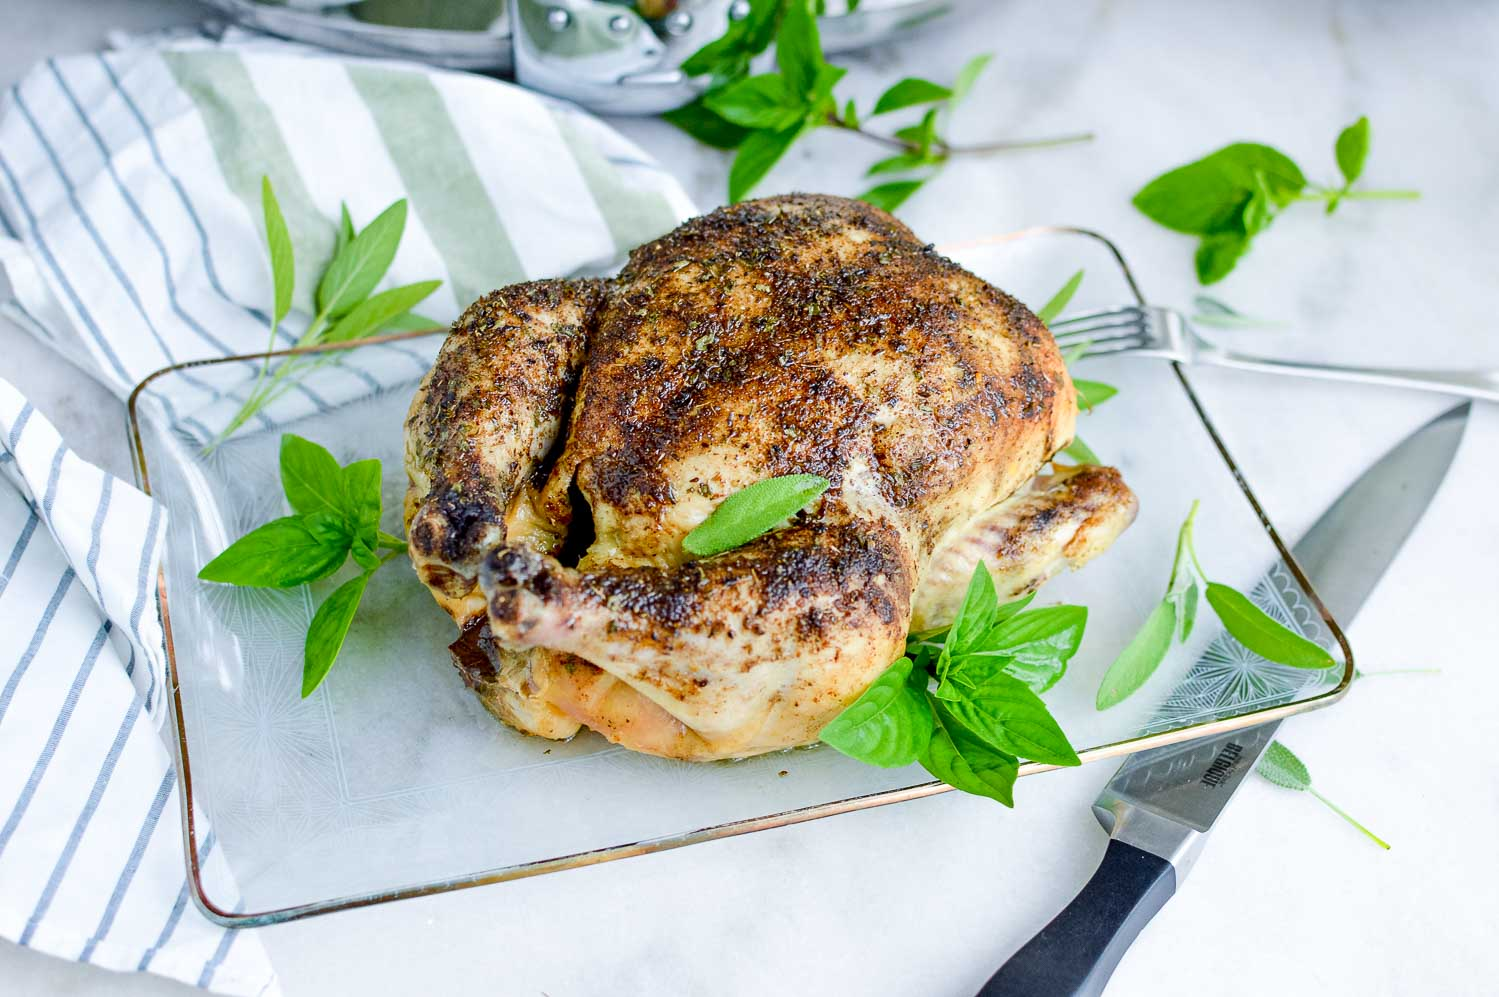 A whole roasted chicken on a clear tray with a metal knife and a fork and green herbs around it.